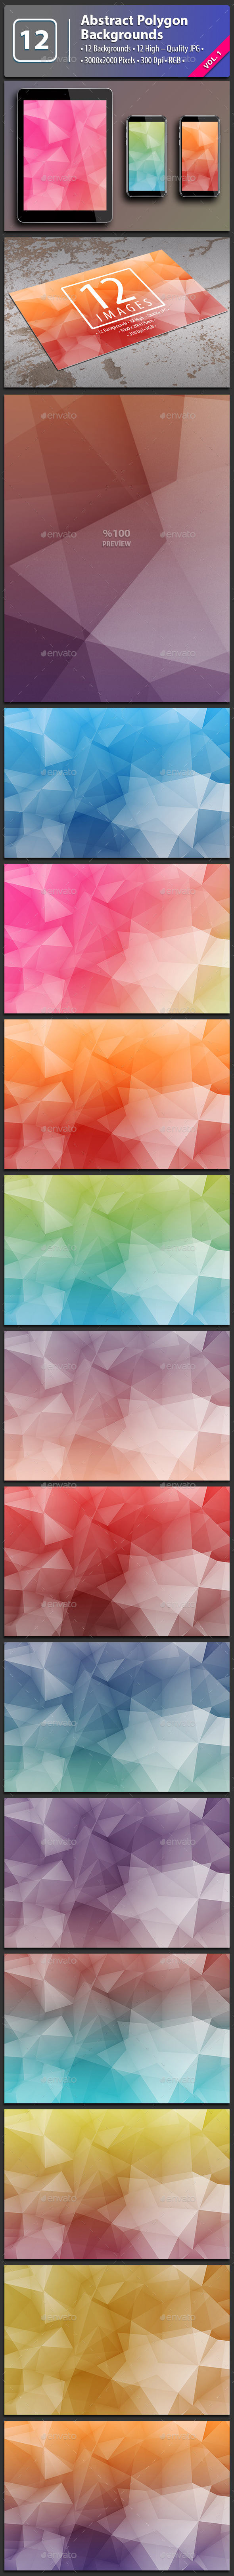 12 Abstract Polygon Backgrounds Vol.1 - Abstract Backgrounds